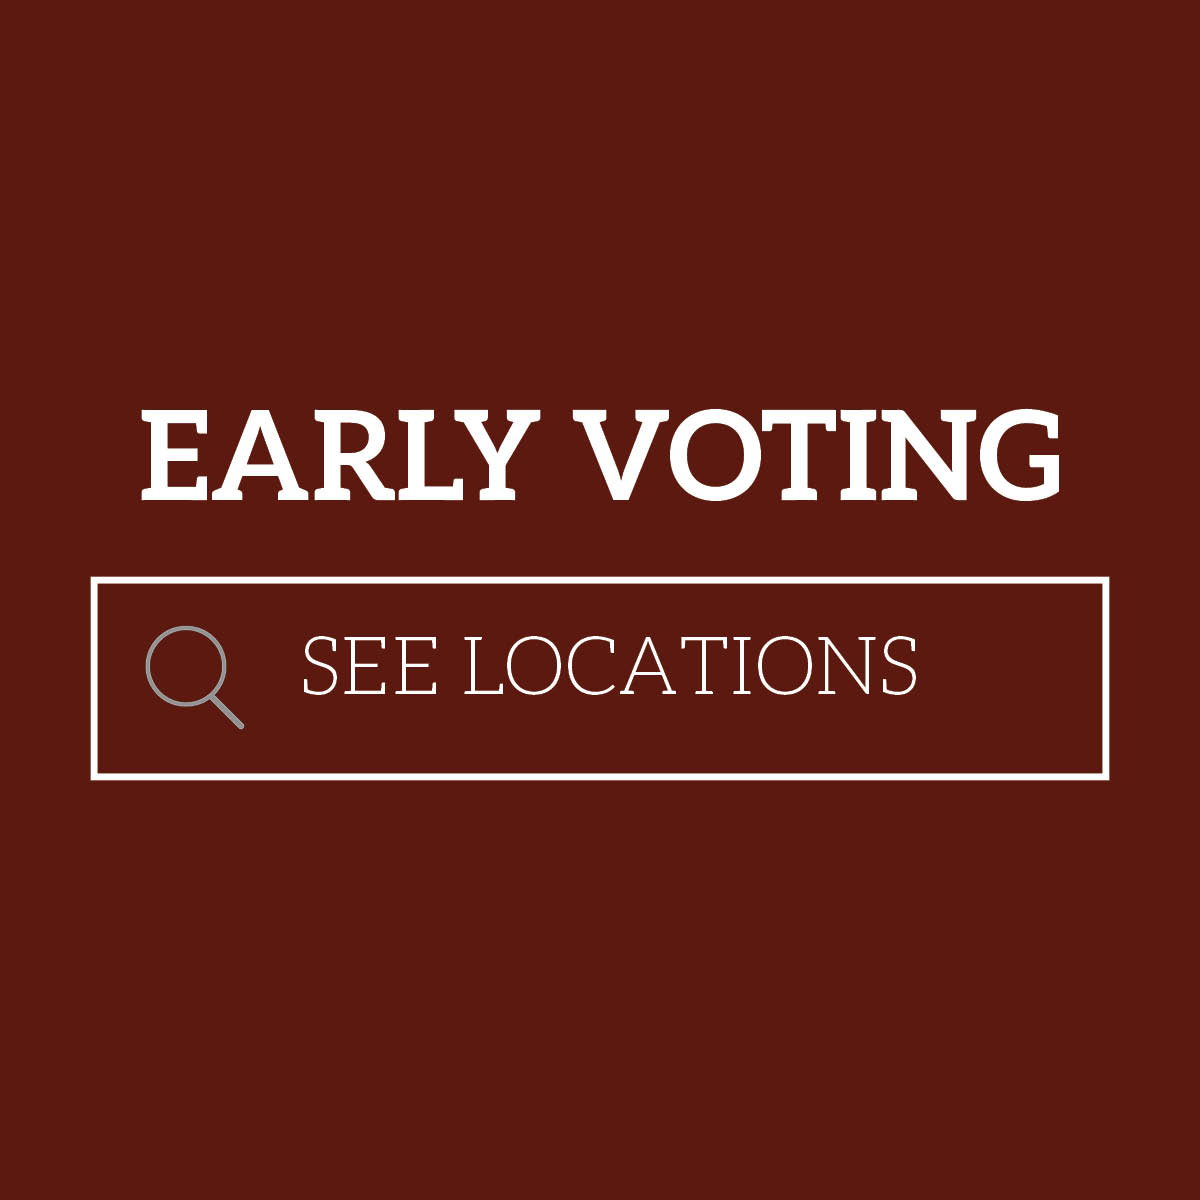 Early Voting_SeeLocations.jpg